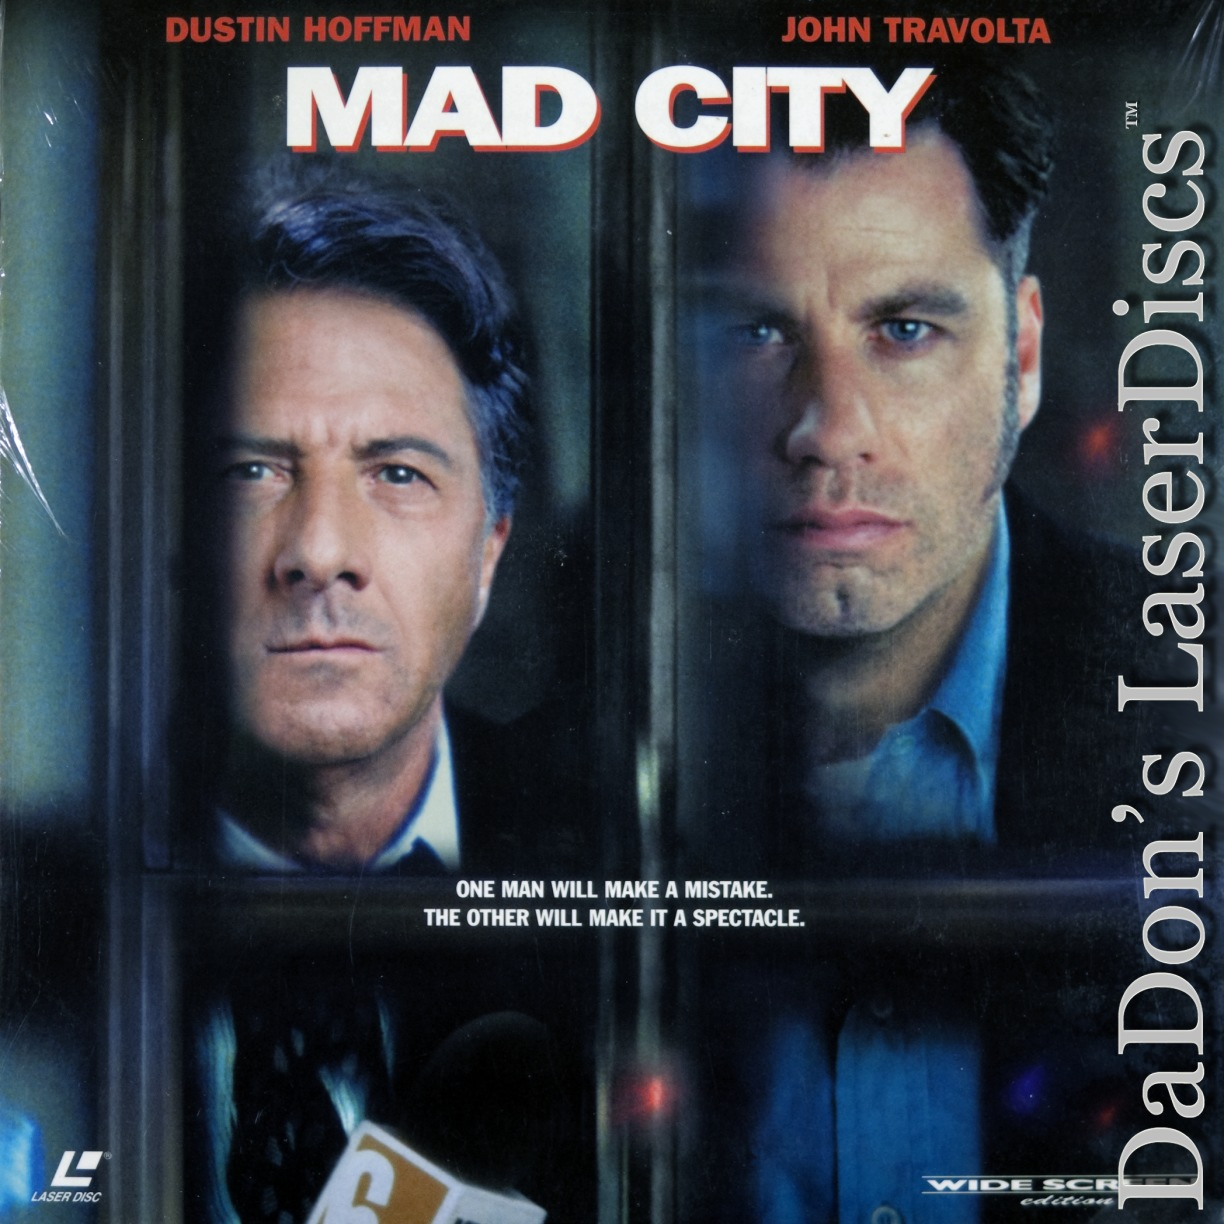 mad city movie review